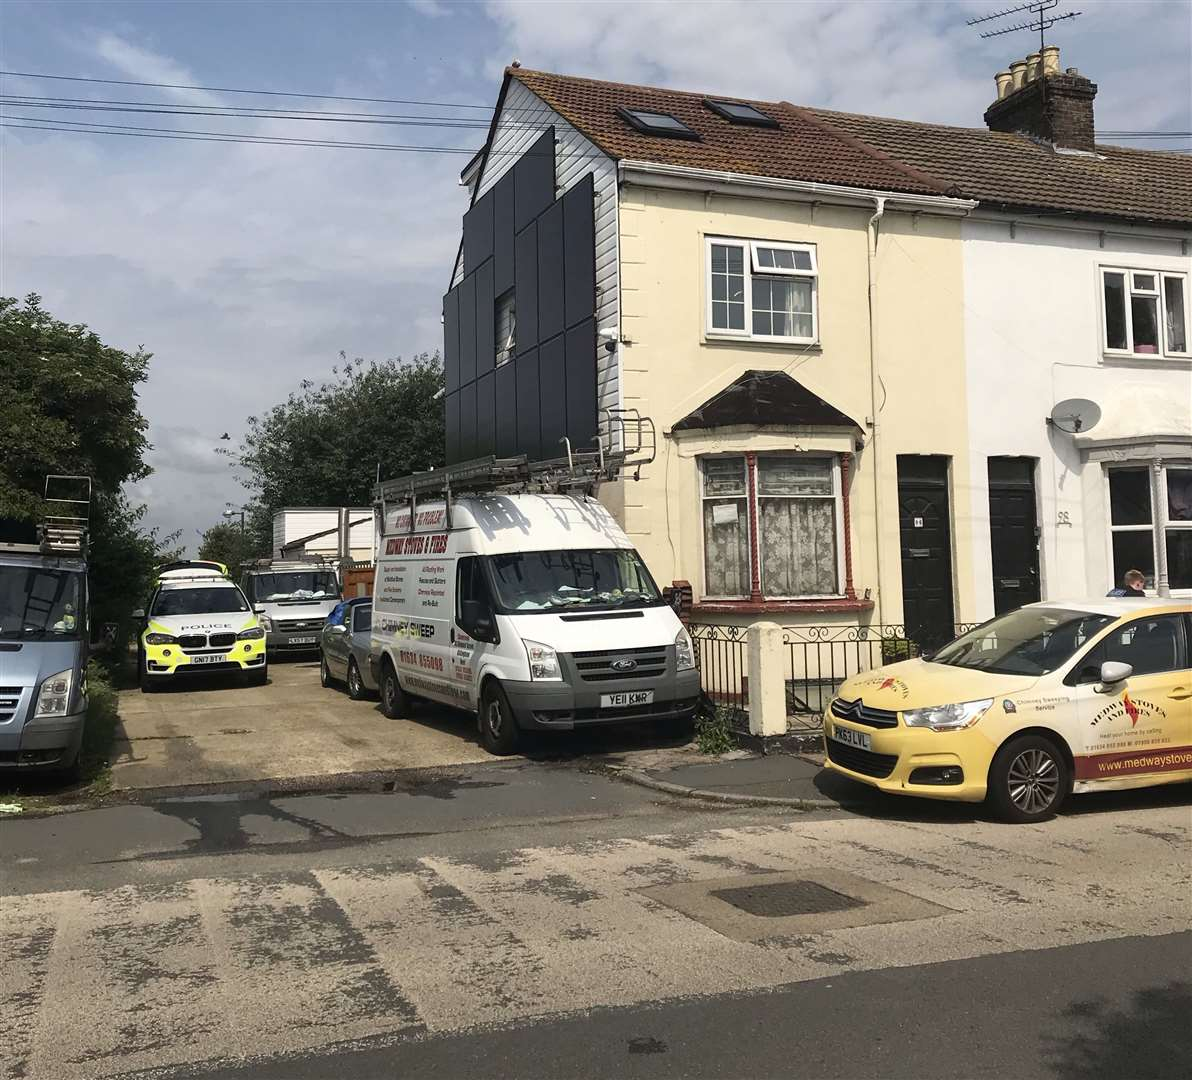 Police have been seen entering a home in Ingram Road